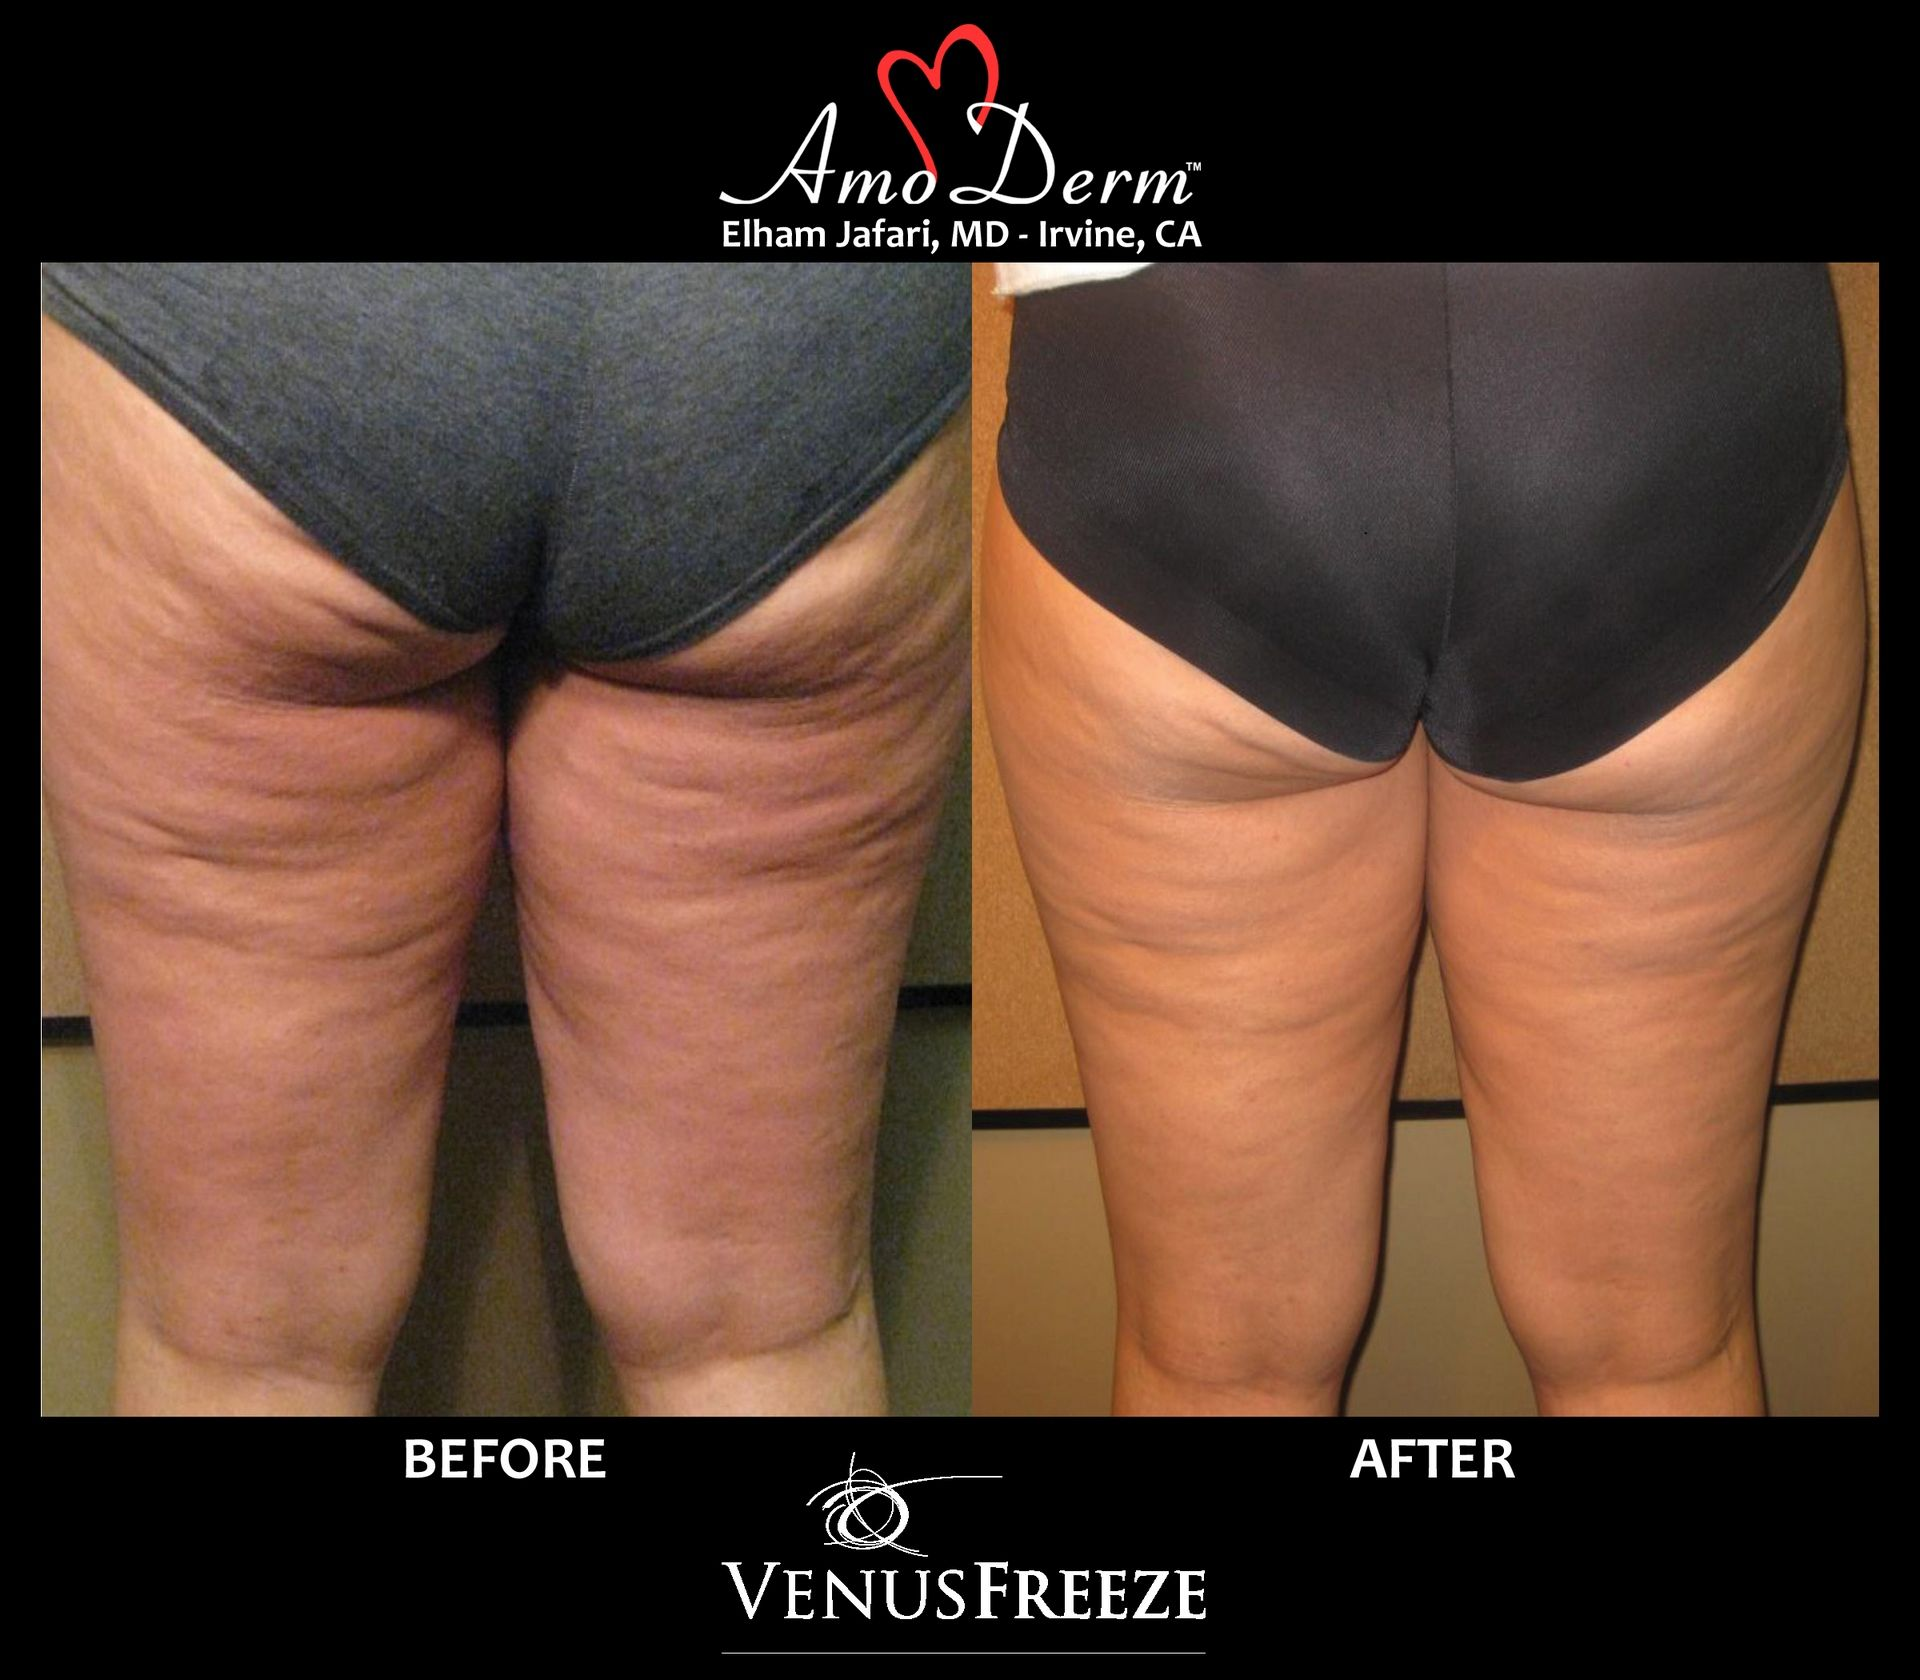 Body Contouring & Skin Tightening with Venus FreezementAmoderm : Before & After Gallery